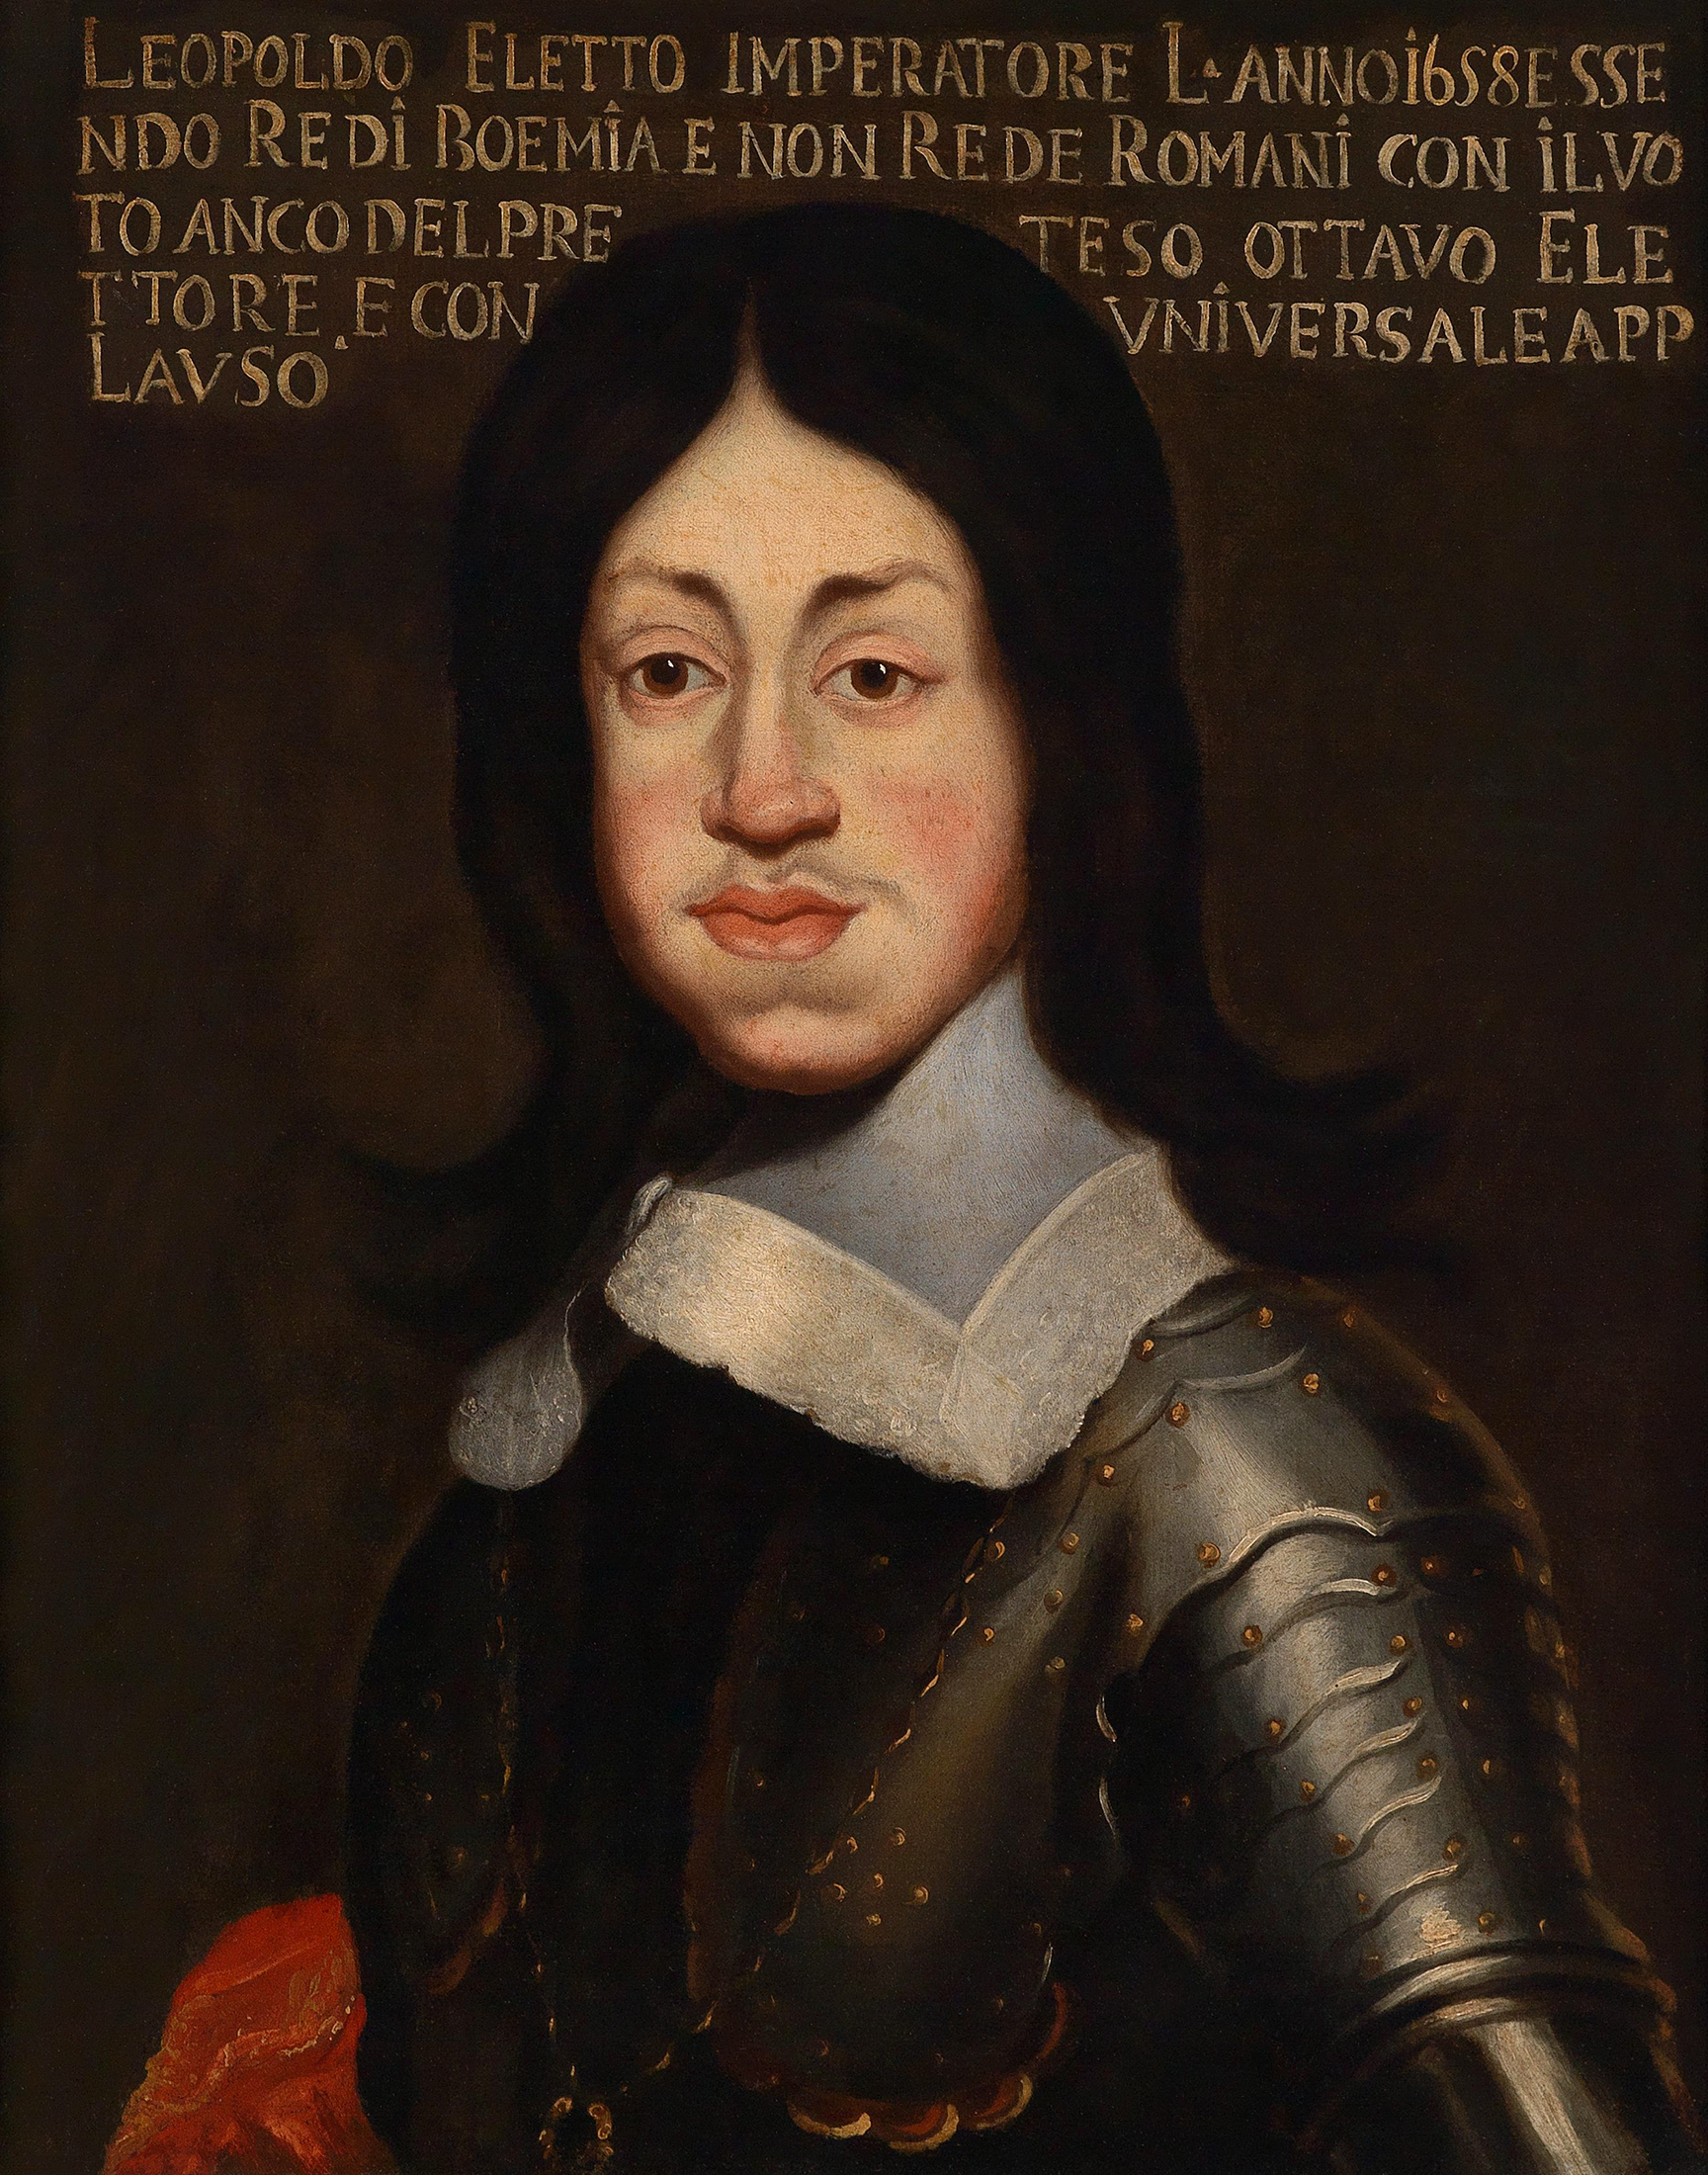 Portrait of Leopold I (1640-1705), Holy Roman Emperor (1658), King of Hungary and Bohemia, Archduke of Austria (1657-1705) | Portraits of Kings